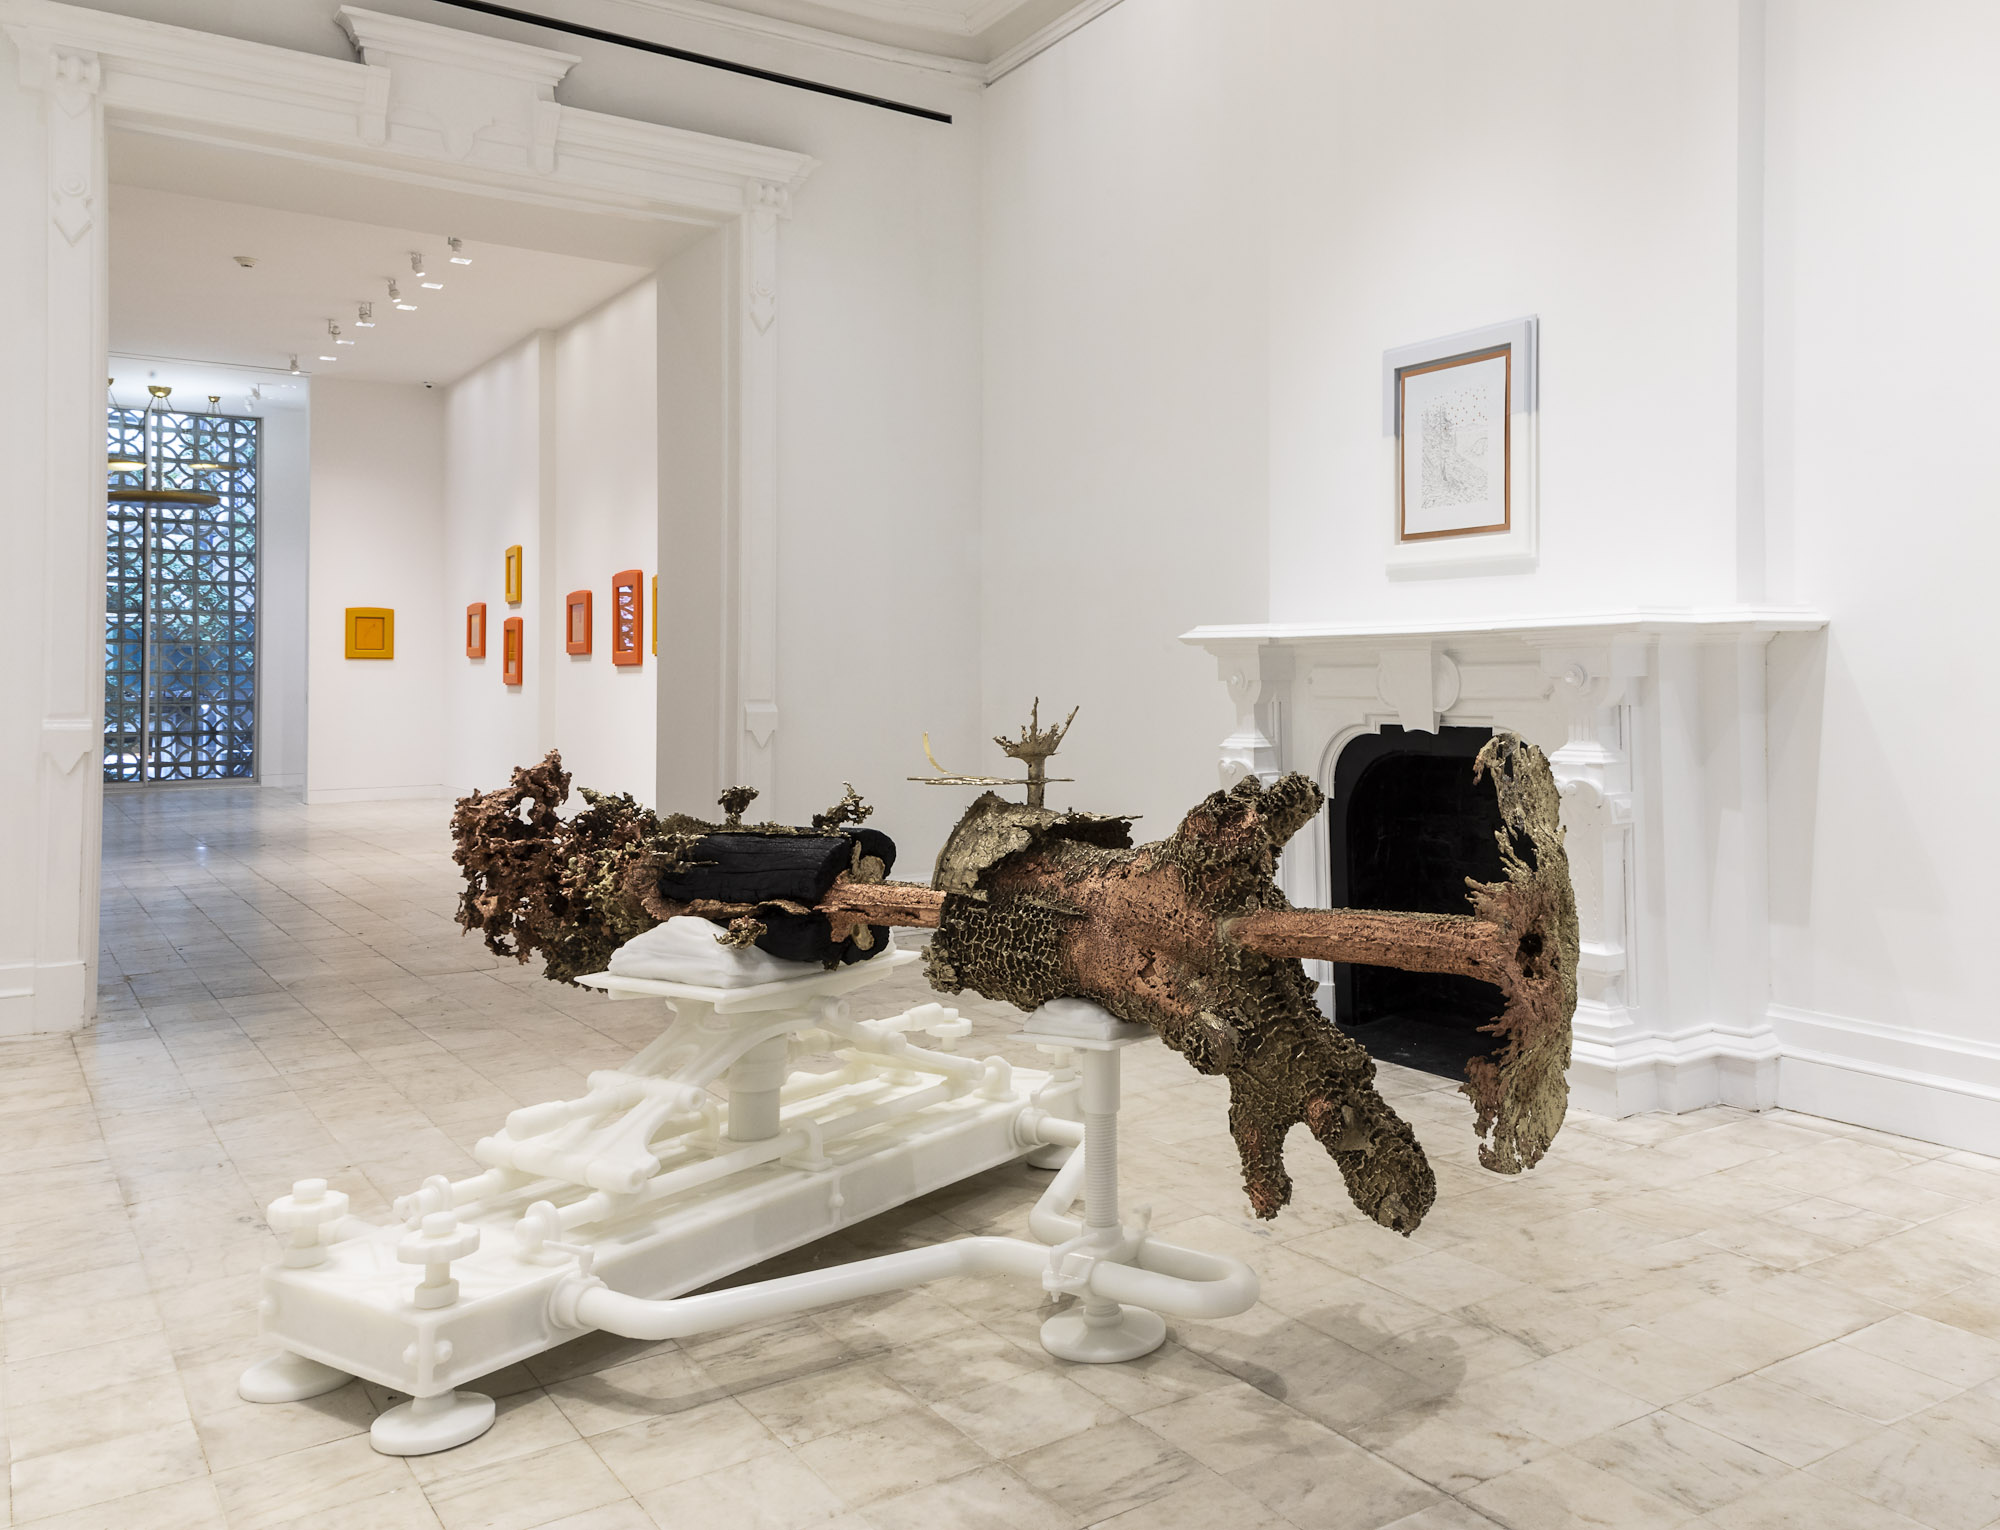 Installation view, Matthew Barney: <i>Embrasure</i>, at Gladstone 64, 2019.